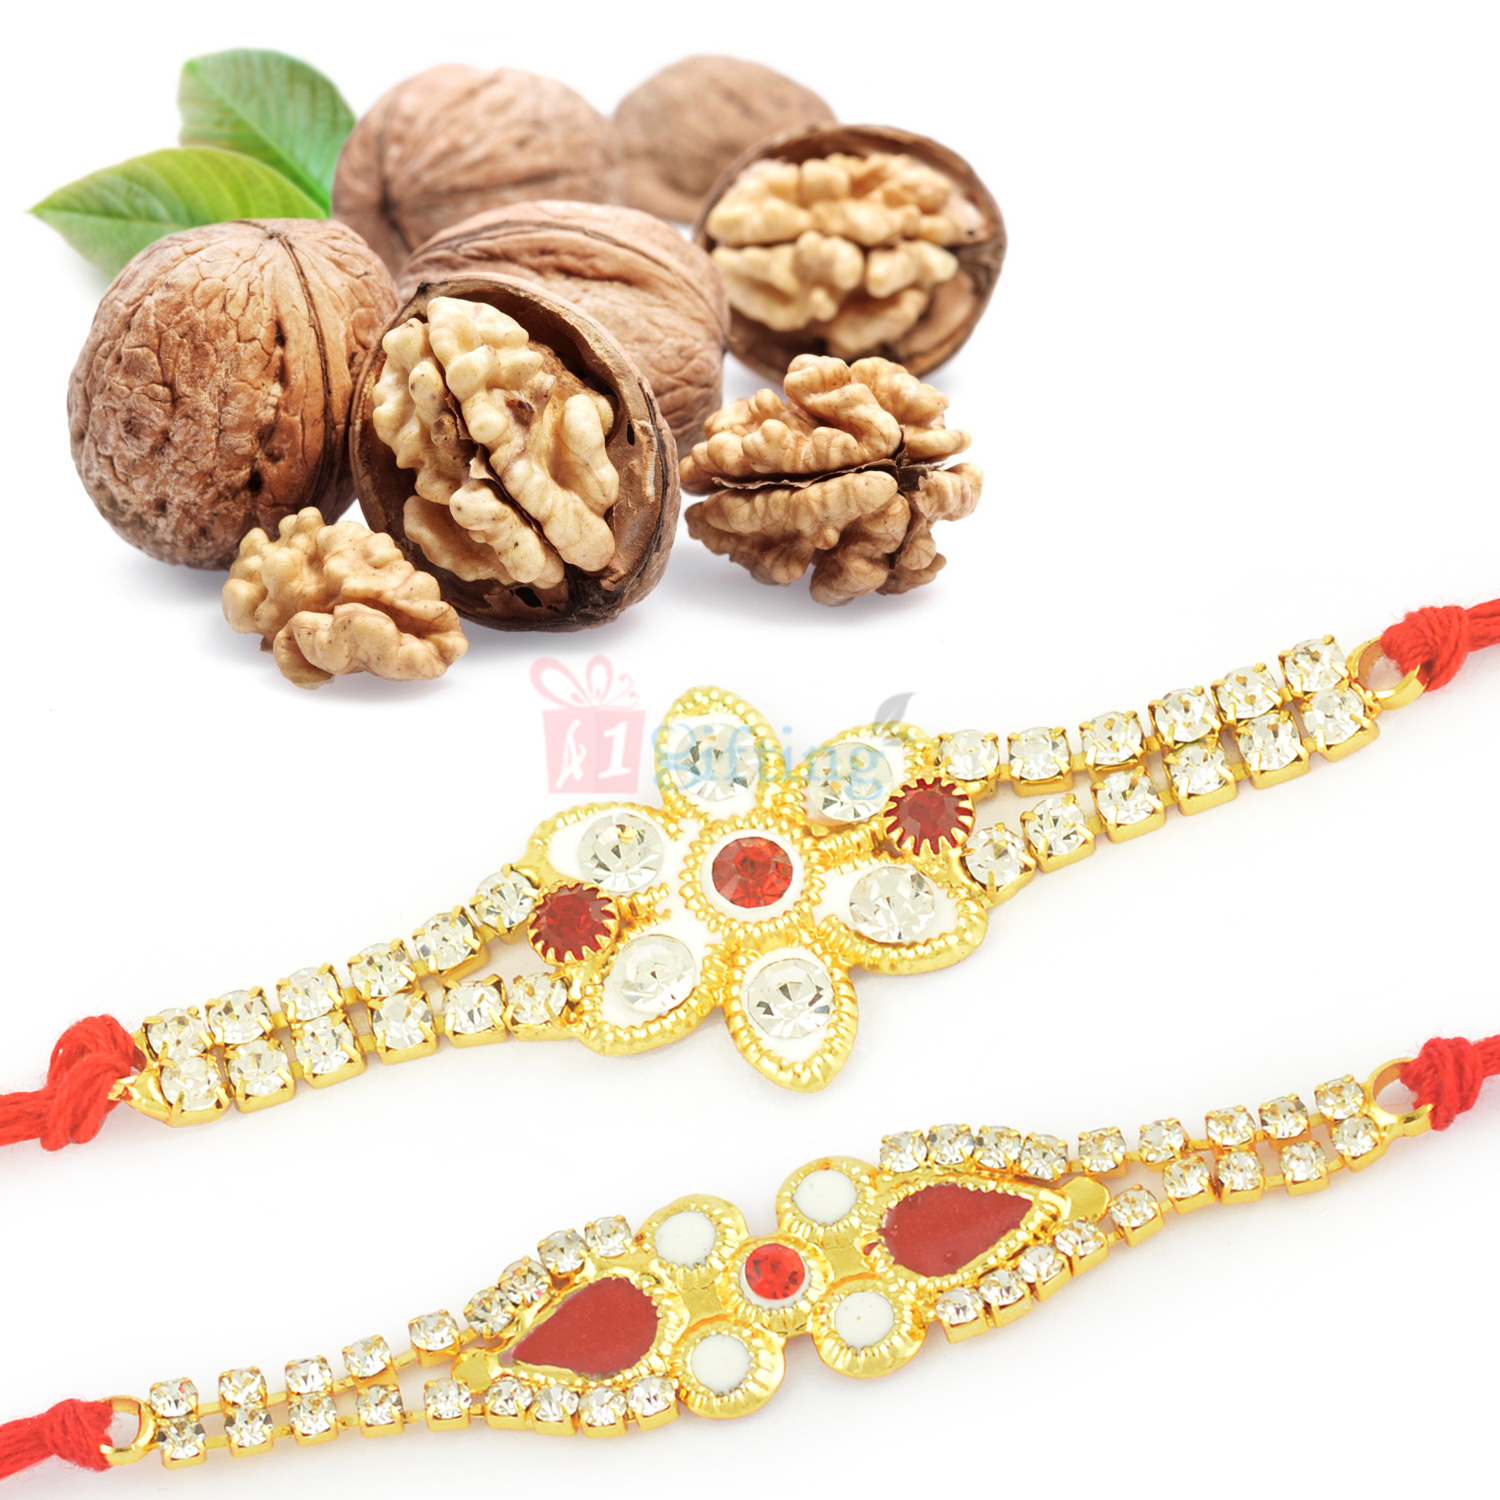 Walnuts Dryfruits with Beautiful 2 Rakhi Set Hamper